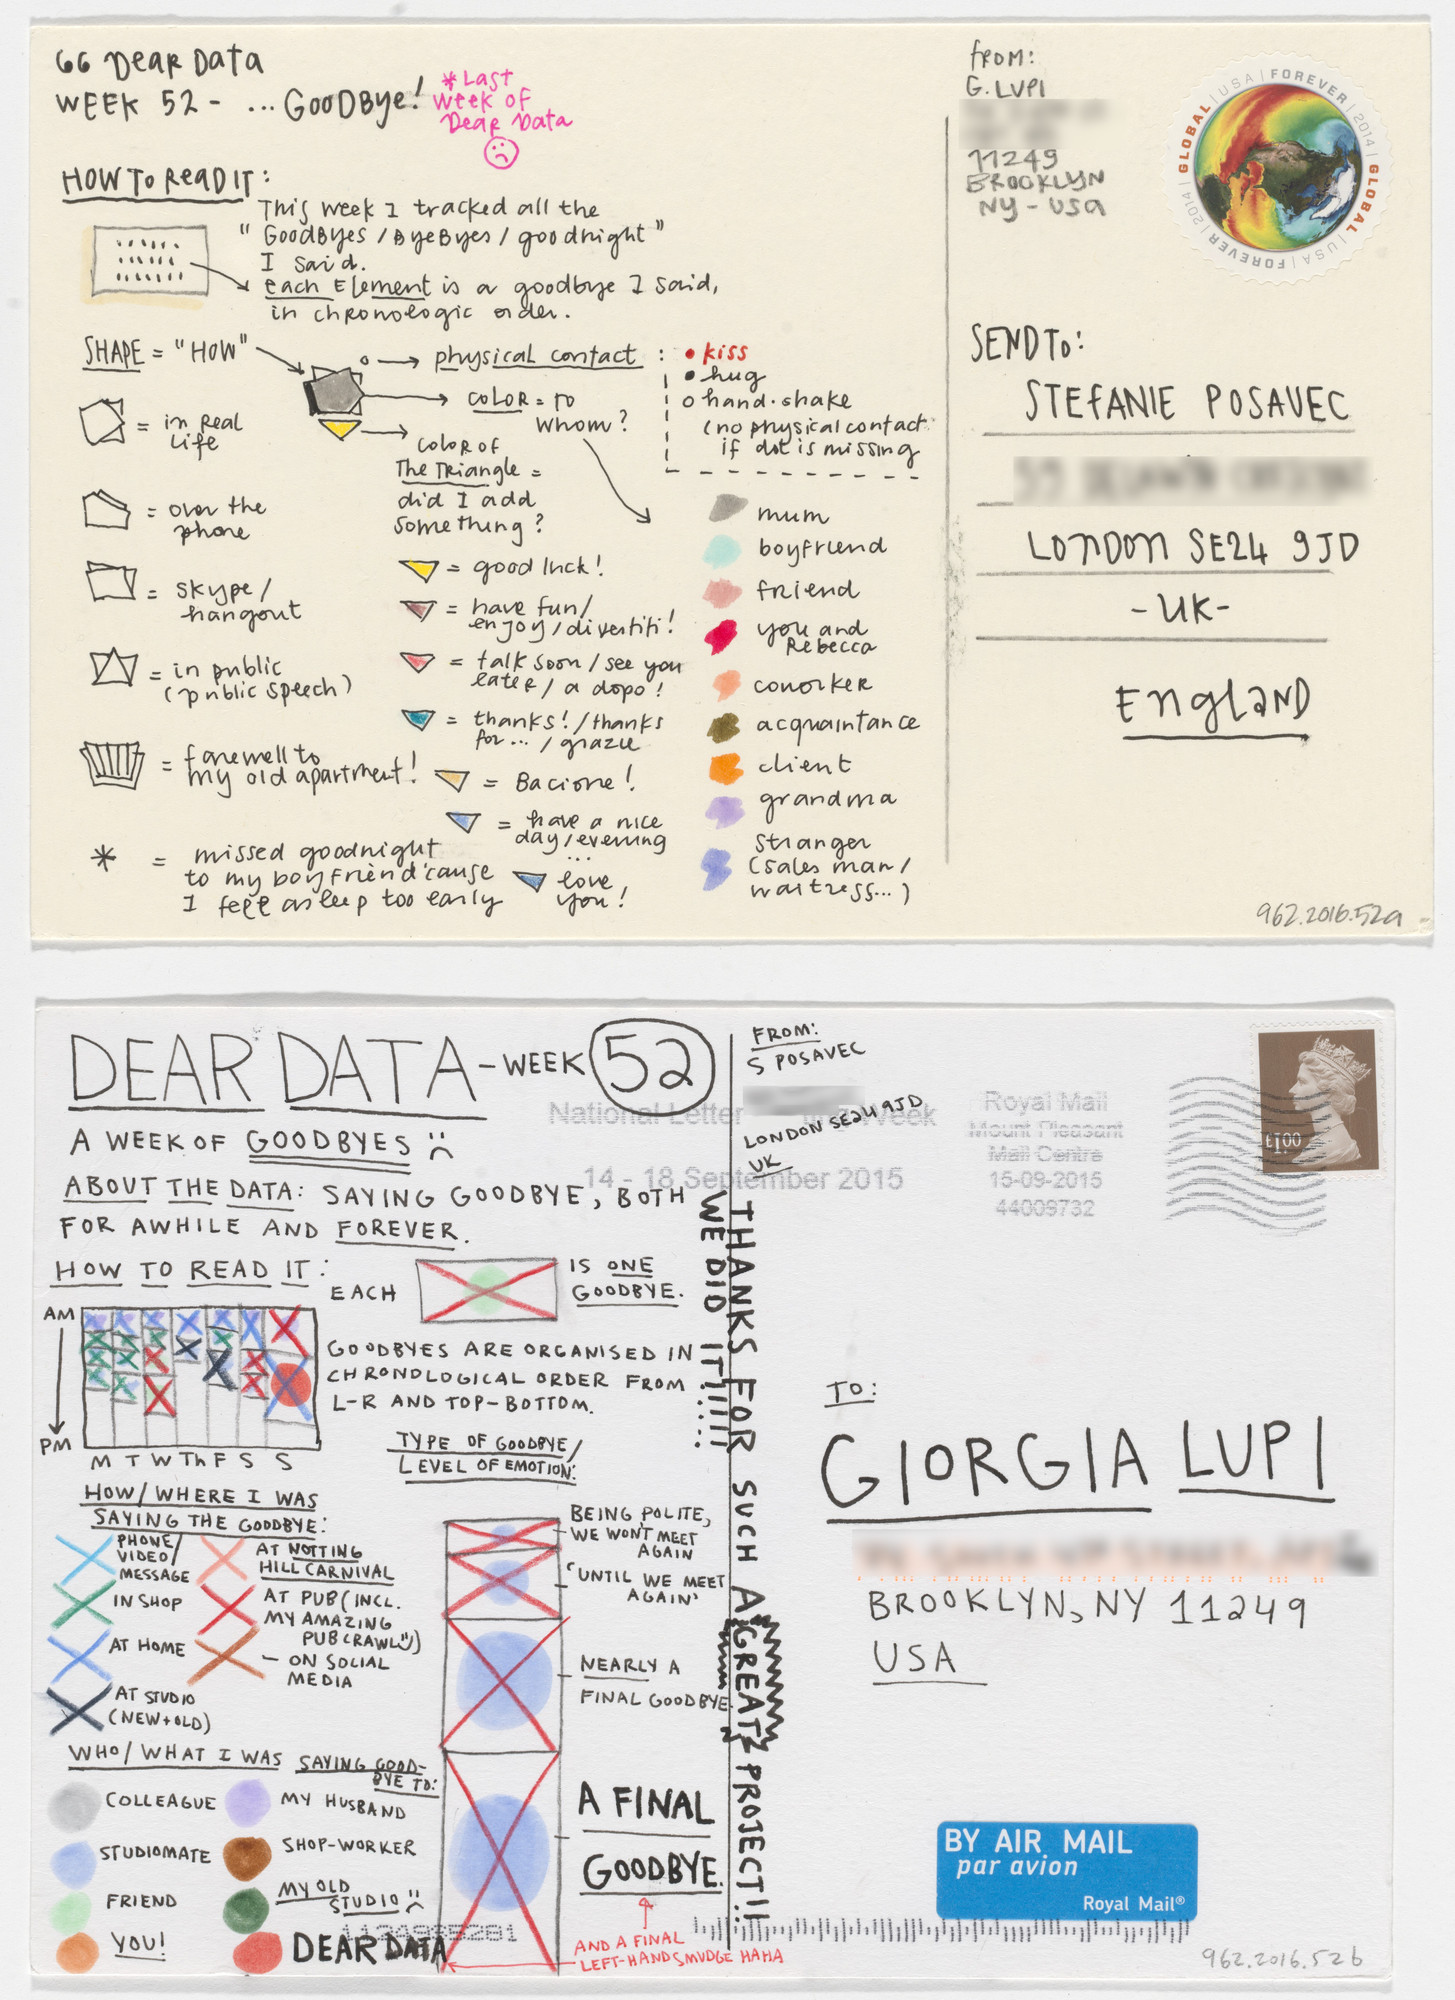 Giorgia Lupi, Stefanie Posavec. Dear Data: Week 52 (Goodbye / A Week of Goodbyes). 2015